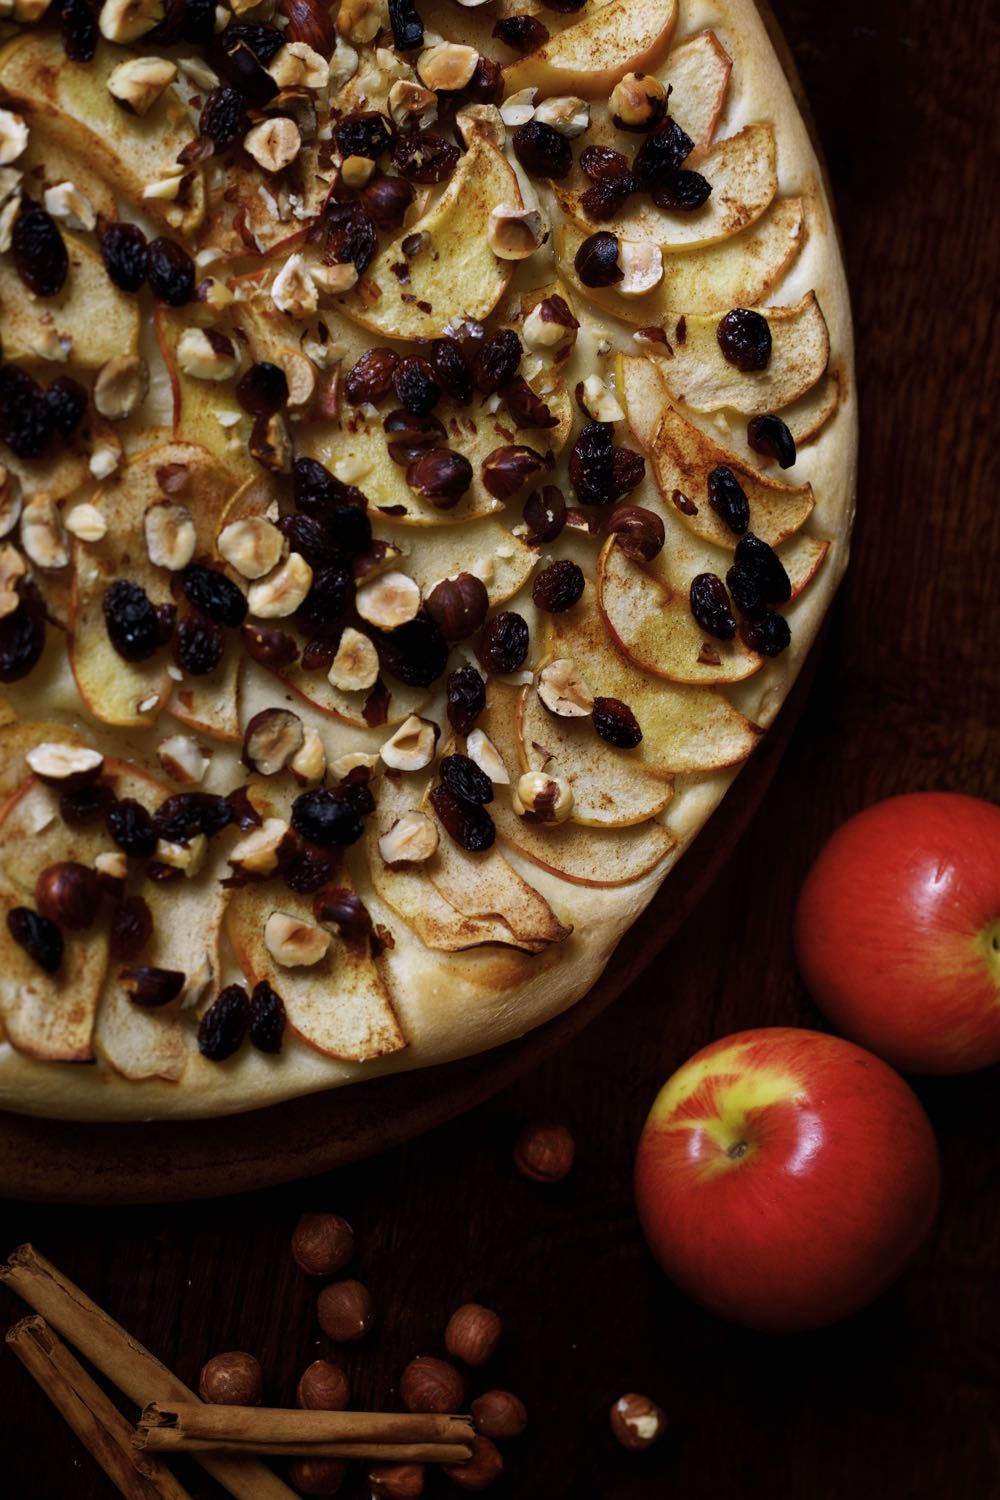 Dessert pizza topped with apples hazelnuts and sultanas.